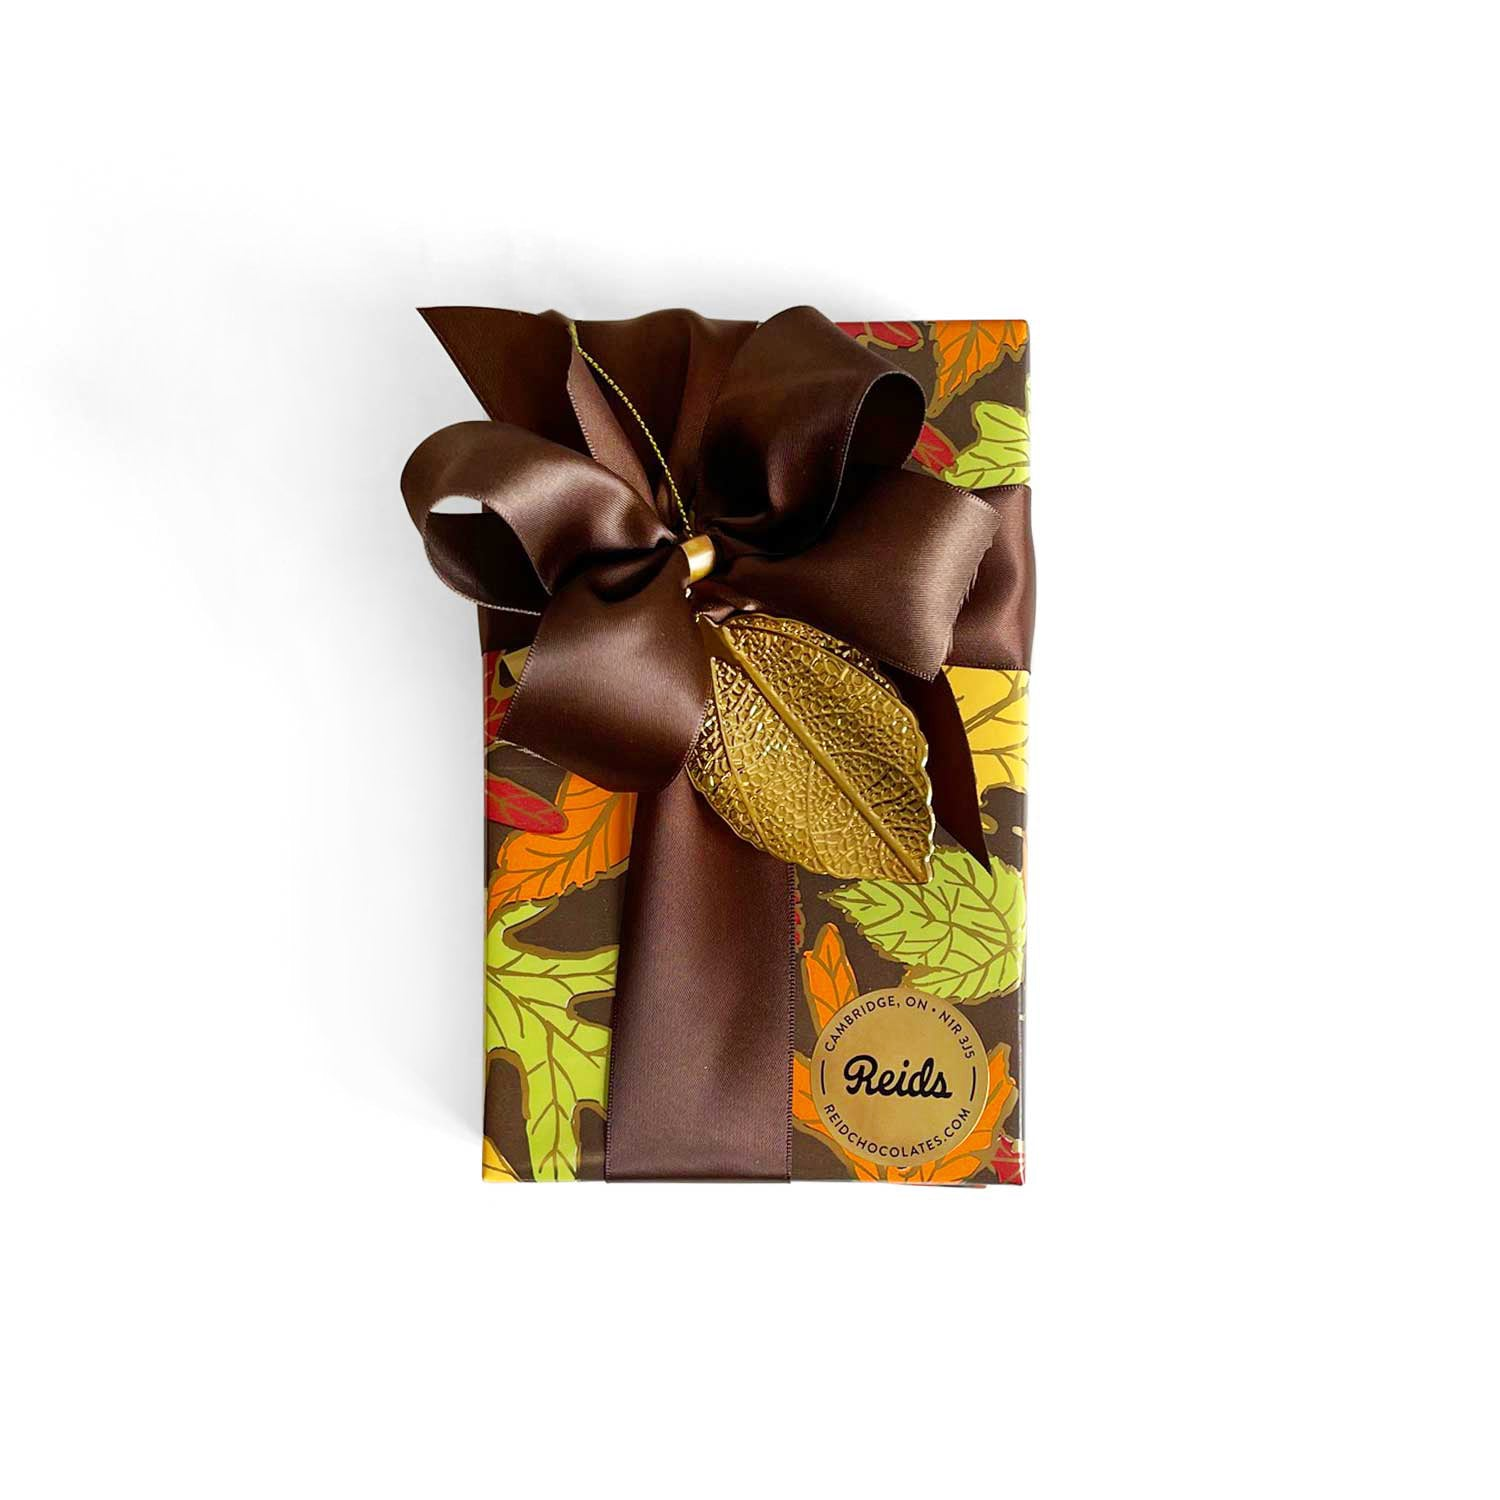 1/2 lb box of assorted chocolates wrapped for the fall season